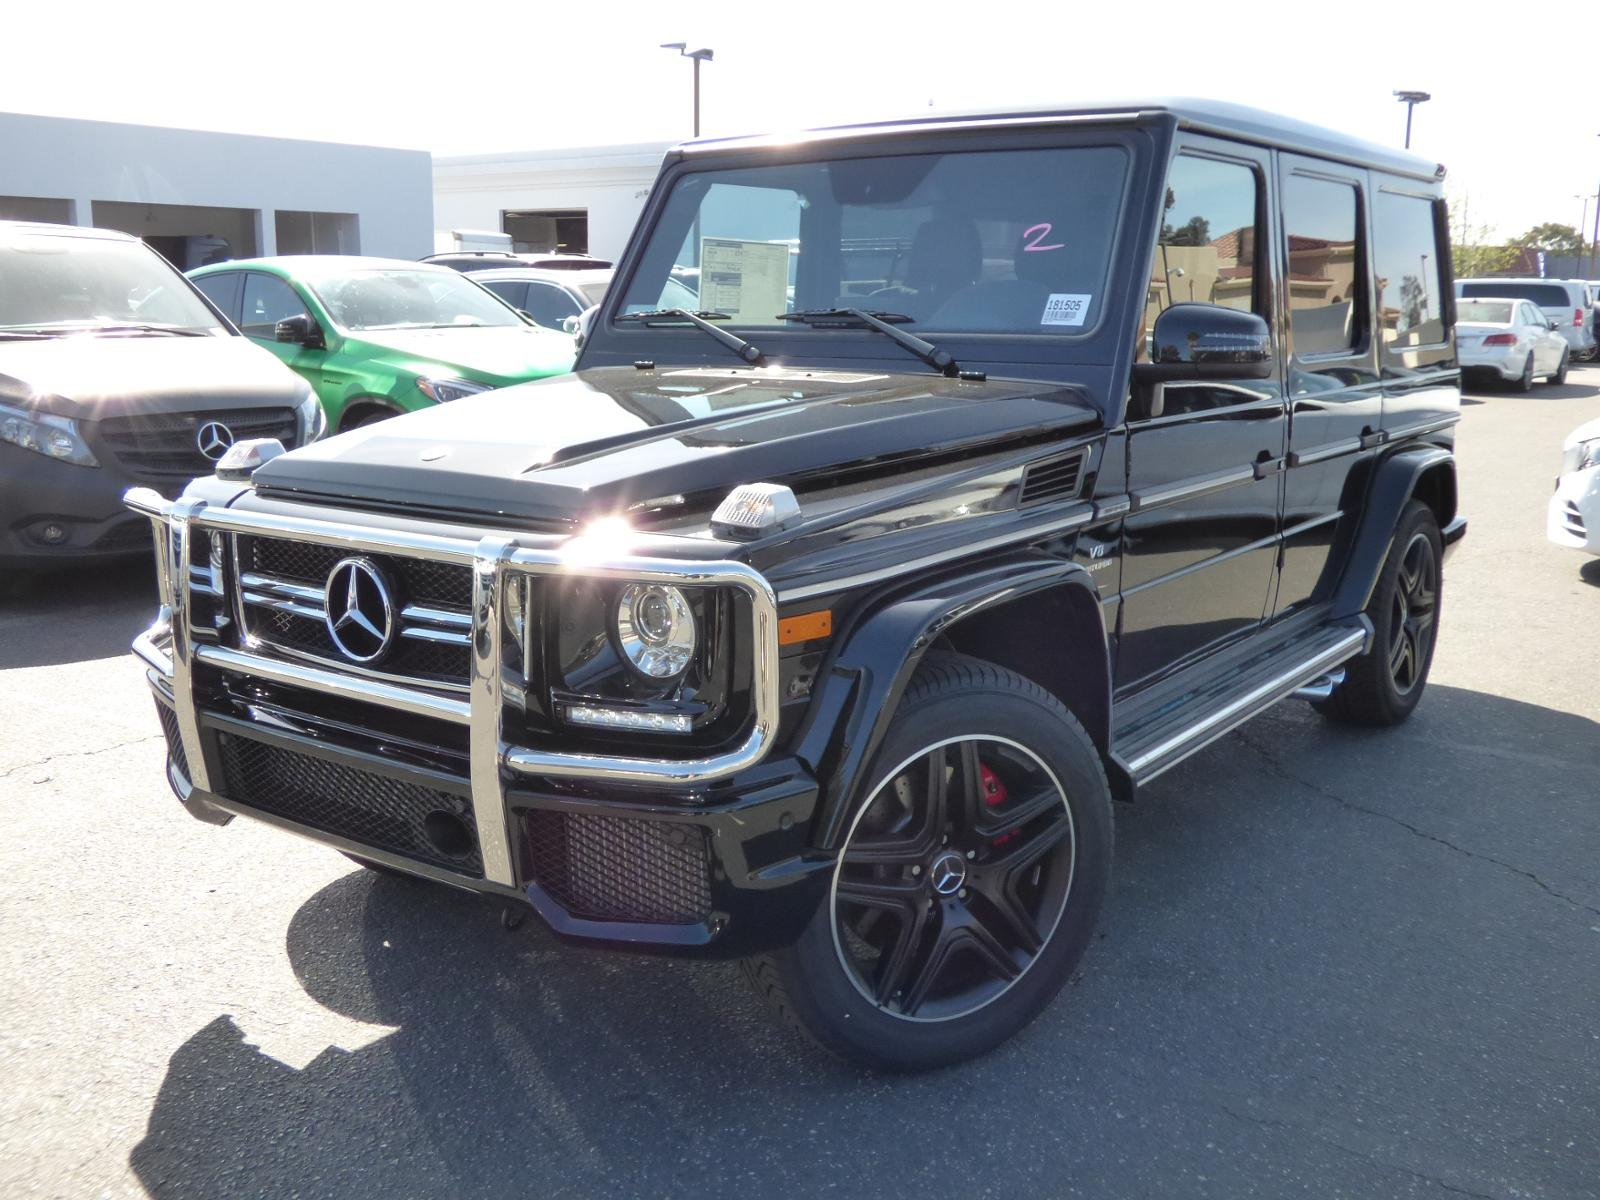 New 2018 Mercedes Benz G Class AMG G 63 SUV in Thousand Oaks